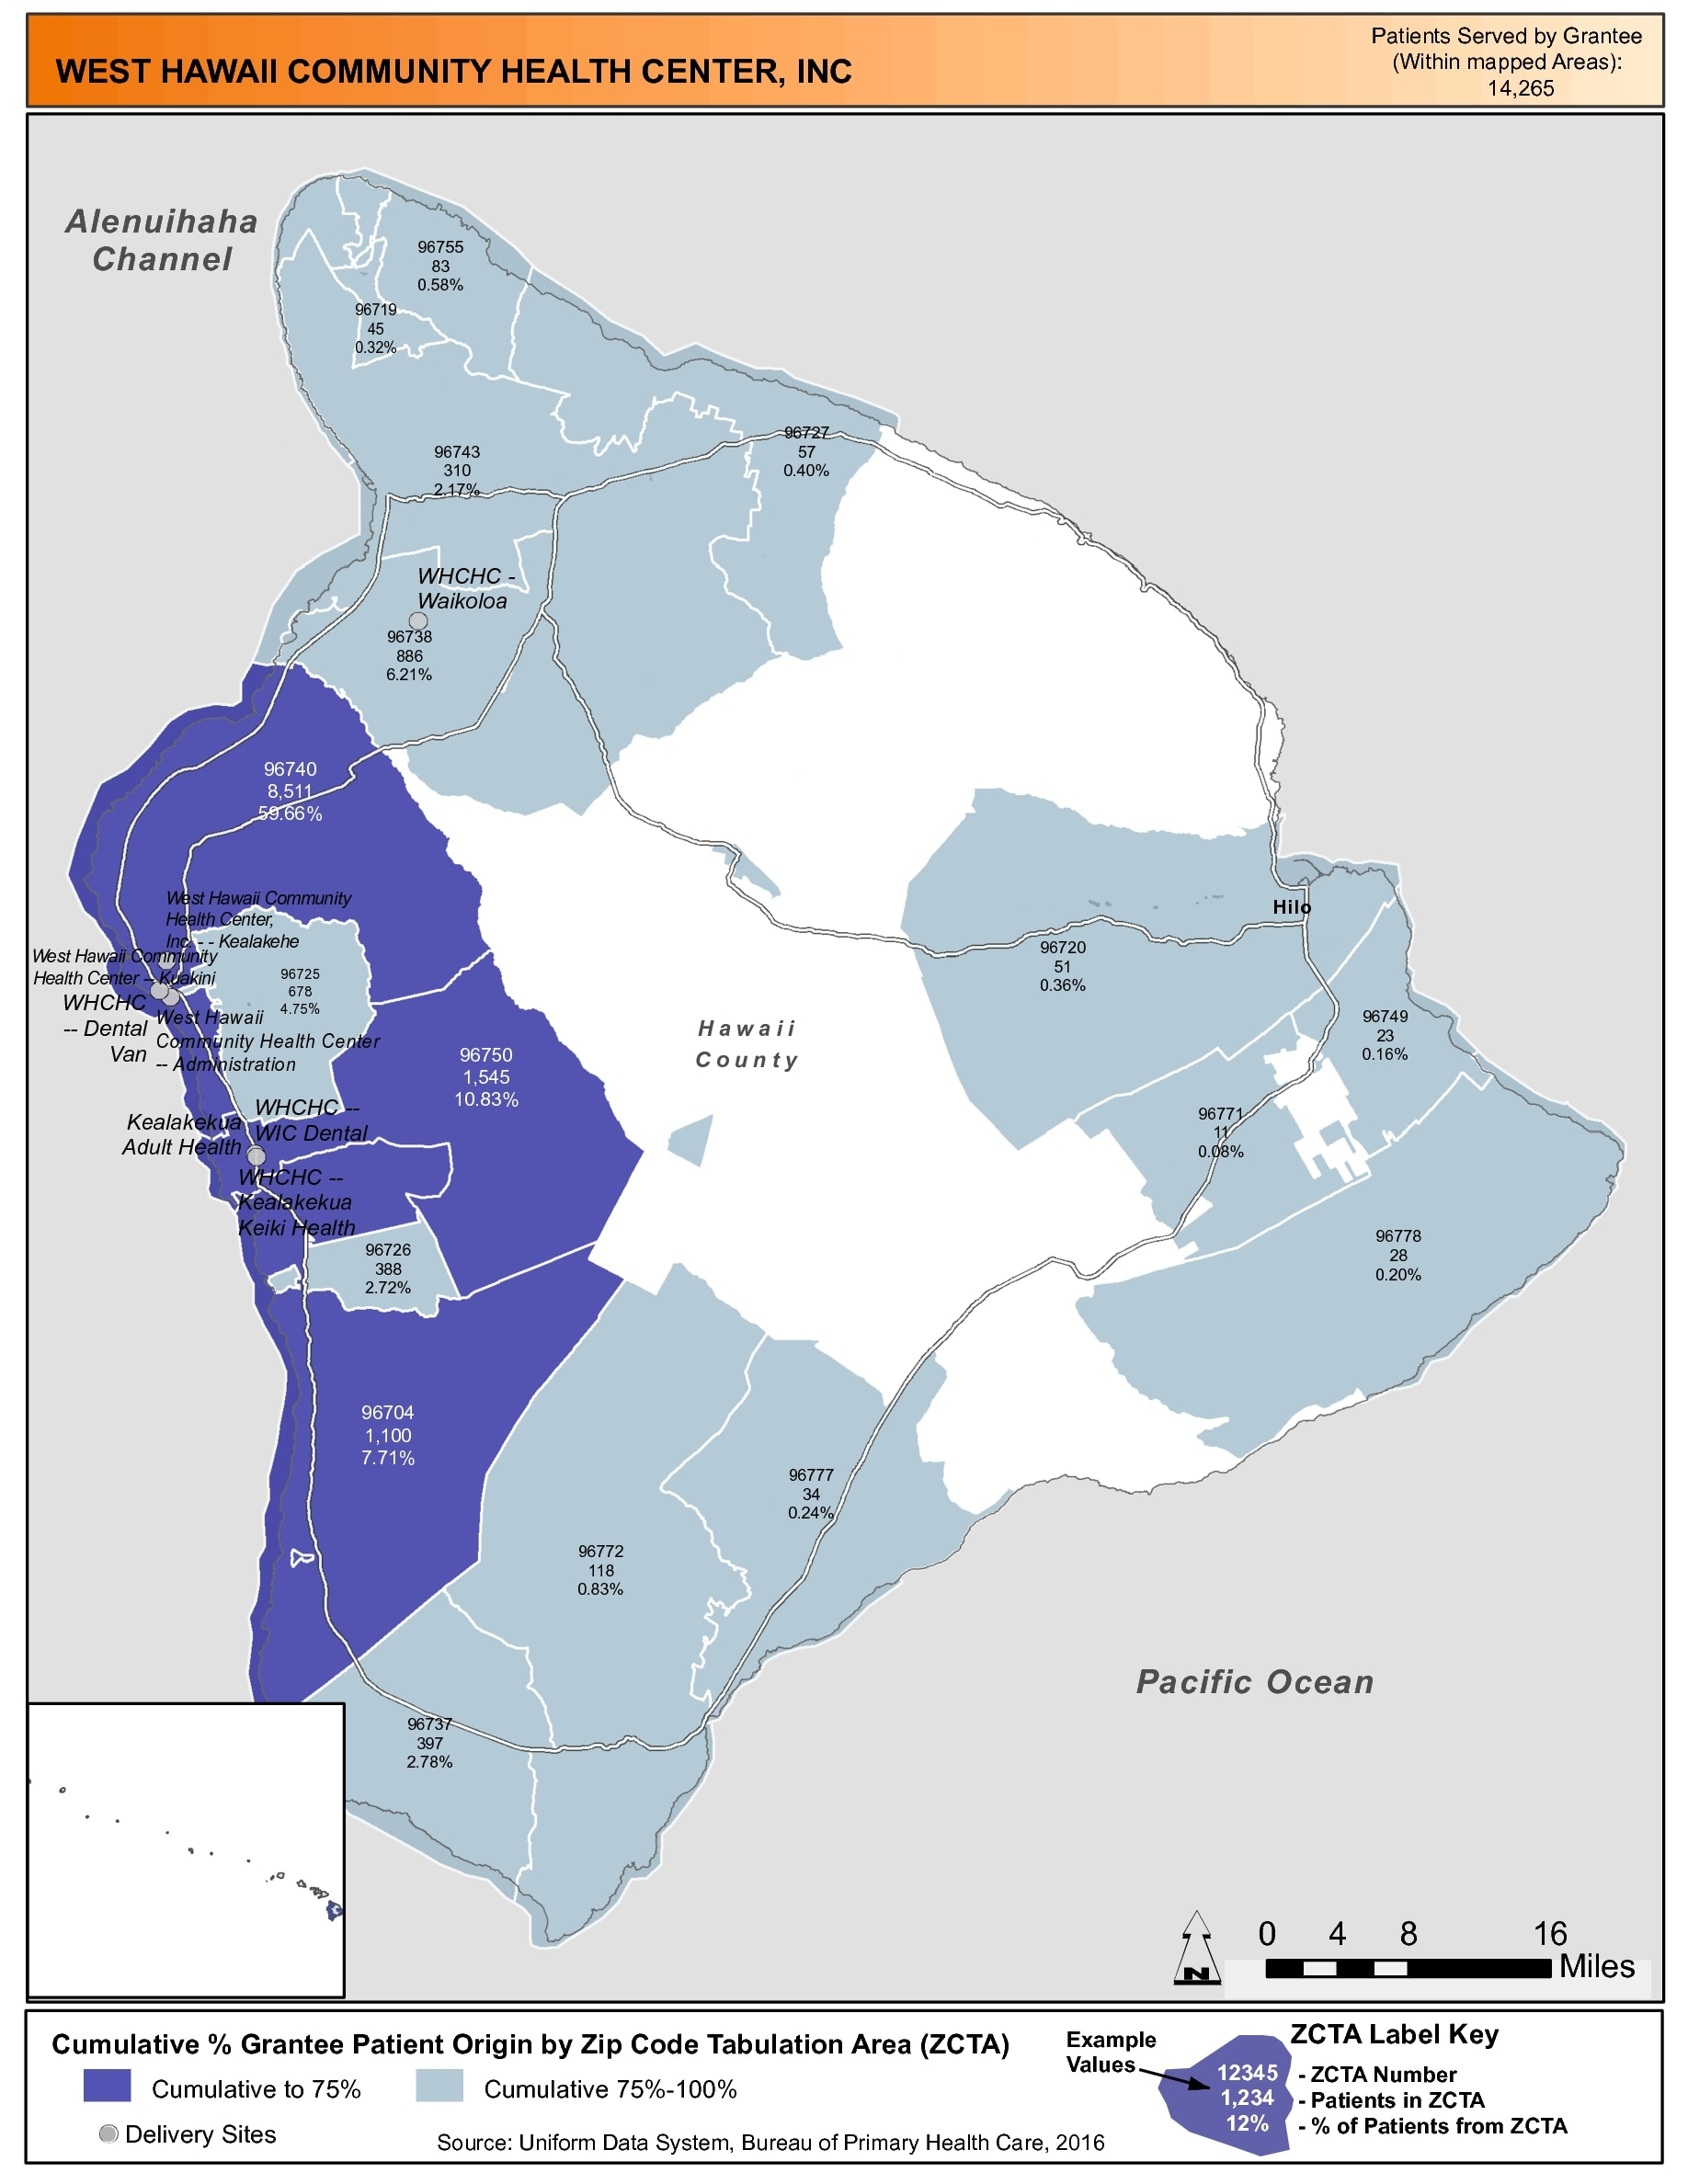 2016 west hawaii community health center inc health center profile service area map gumiabroncs Gallery